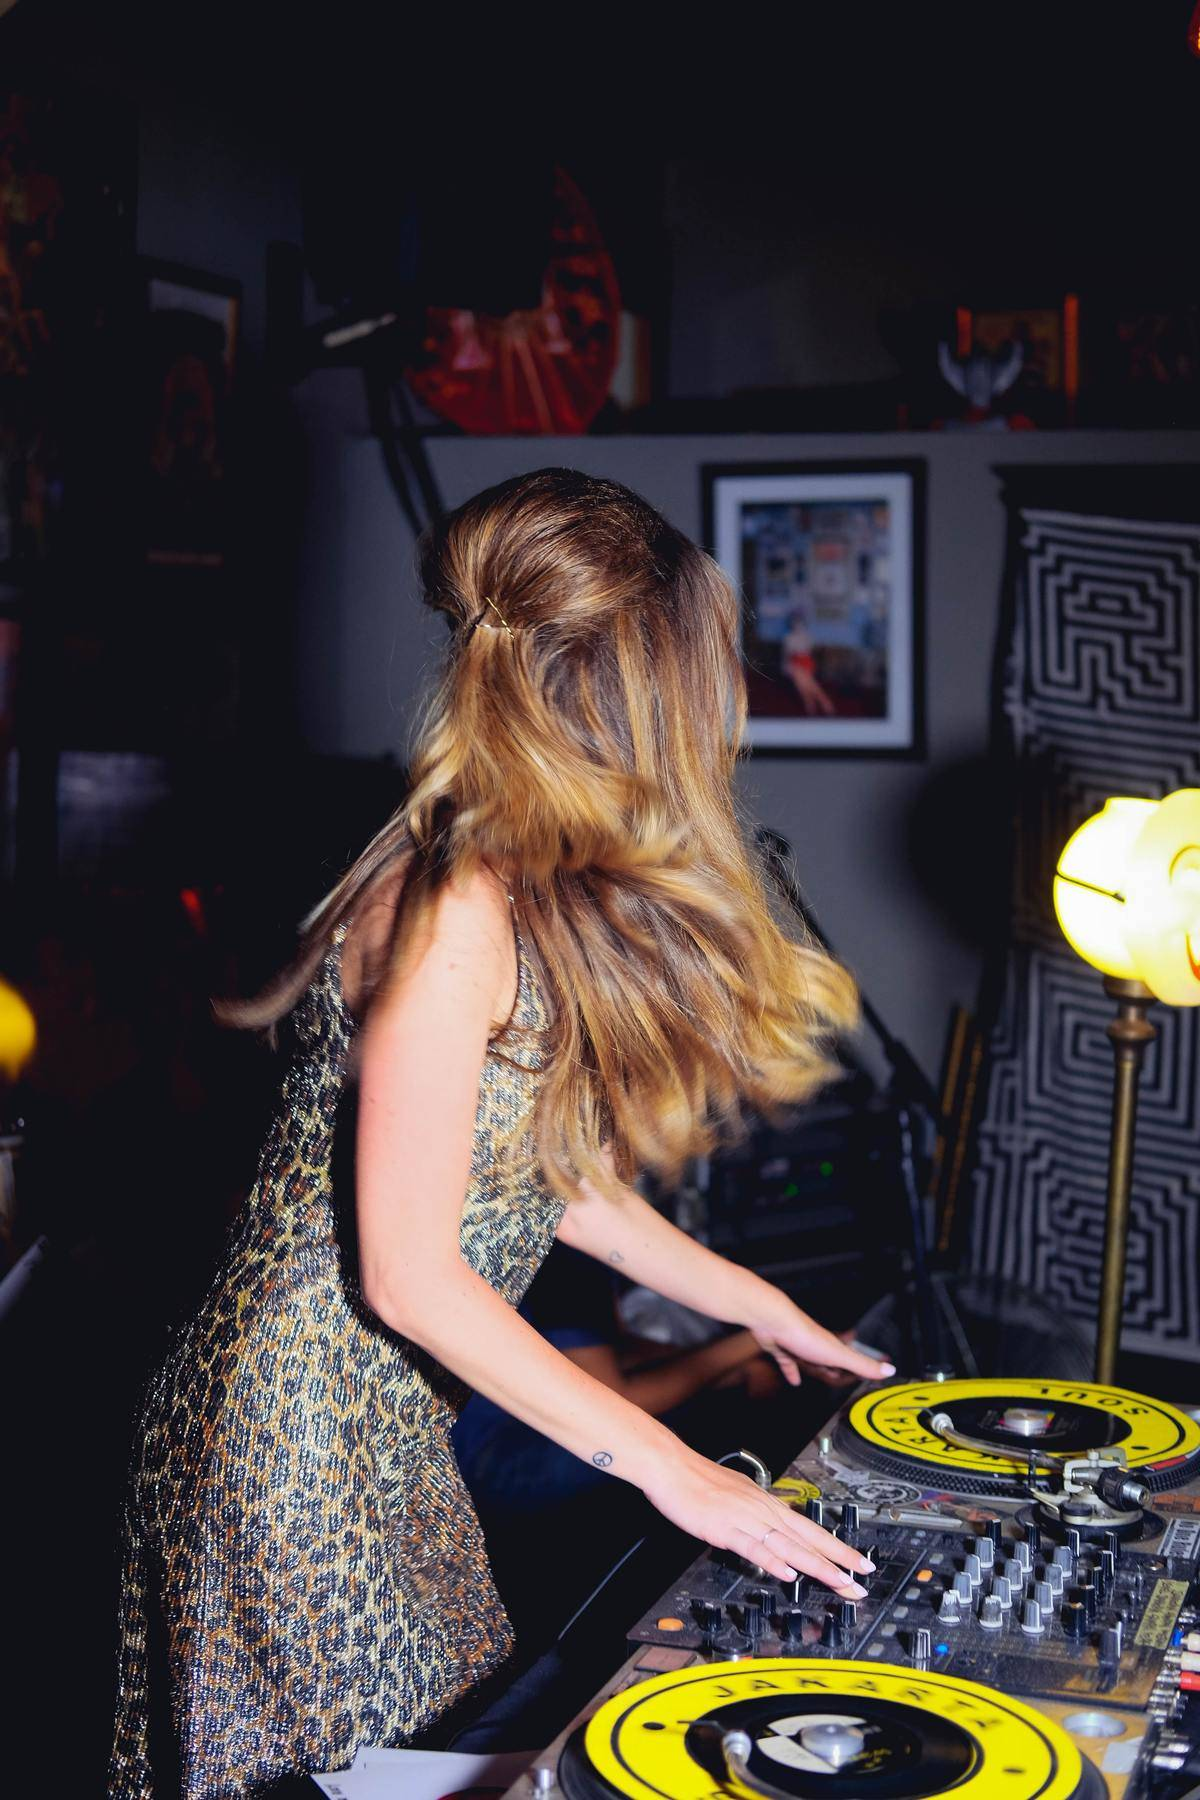 woman in party outfit plays with dj table